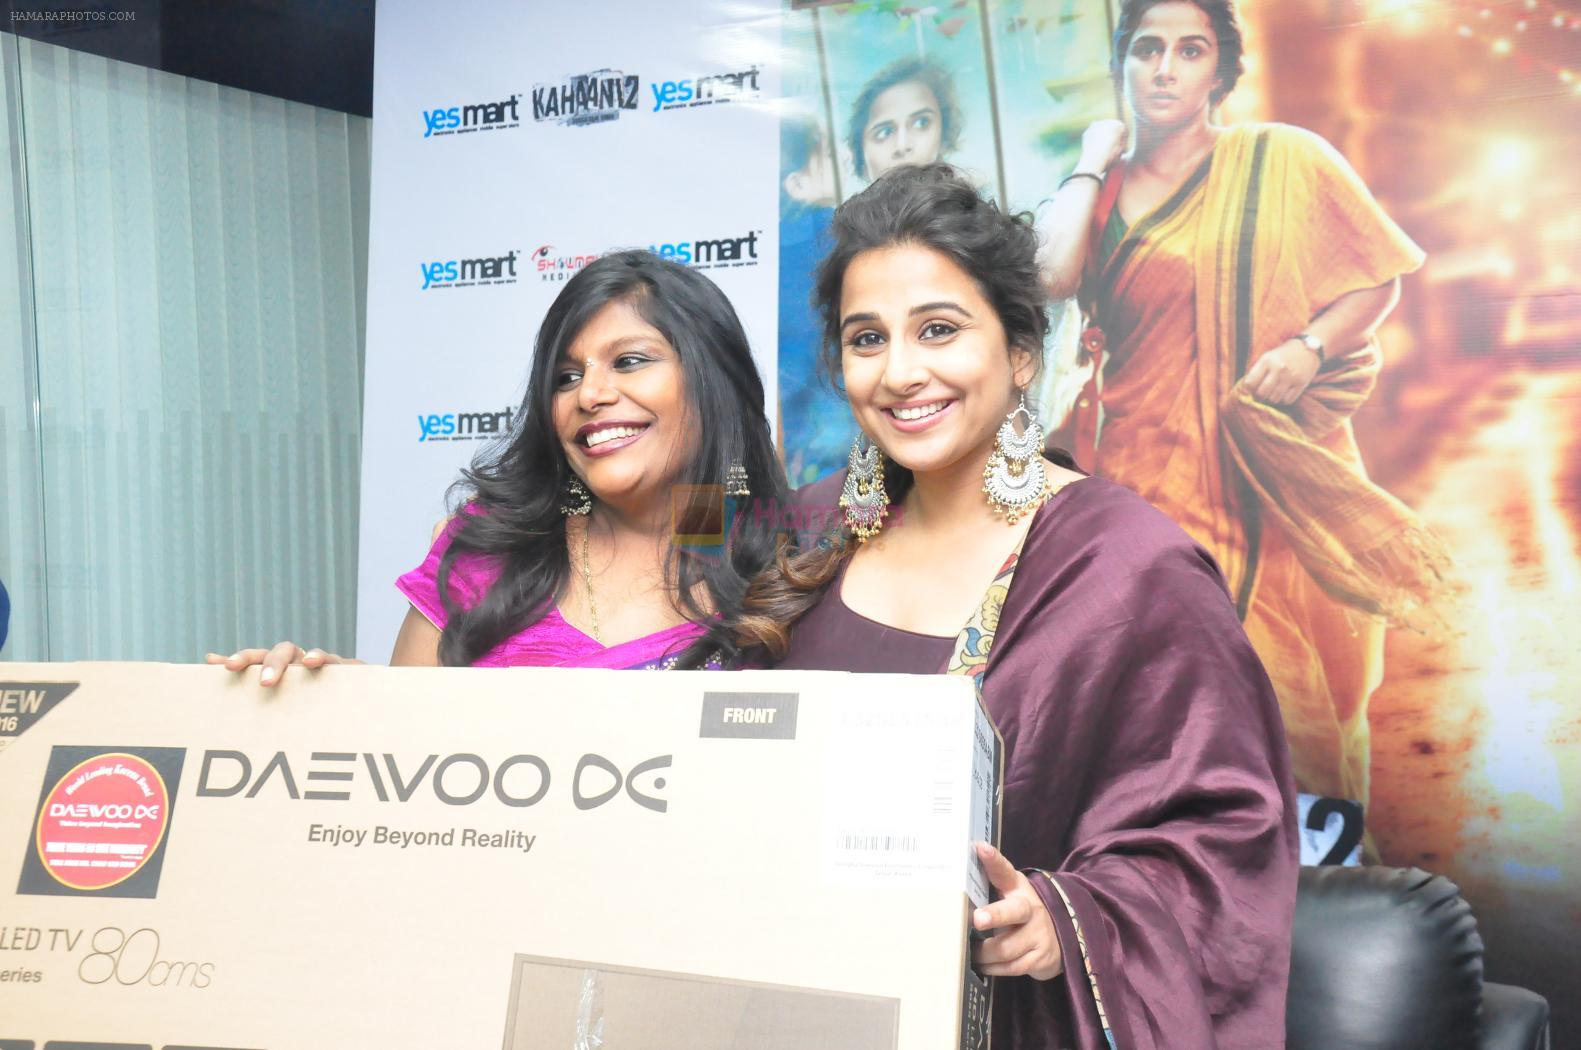 Vidya balan at  Kahaani 2 Movie Promotion in Yesmart on 23rd Nov 2016